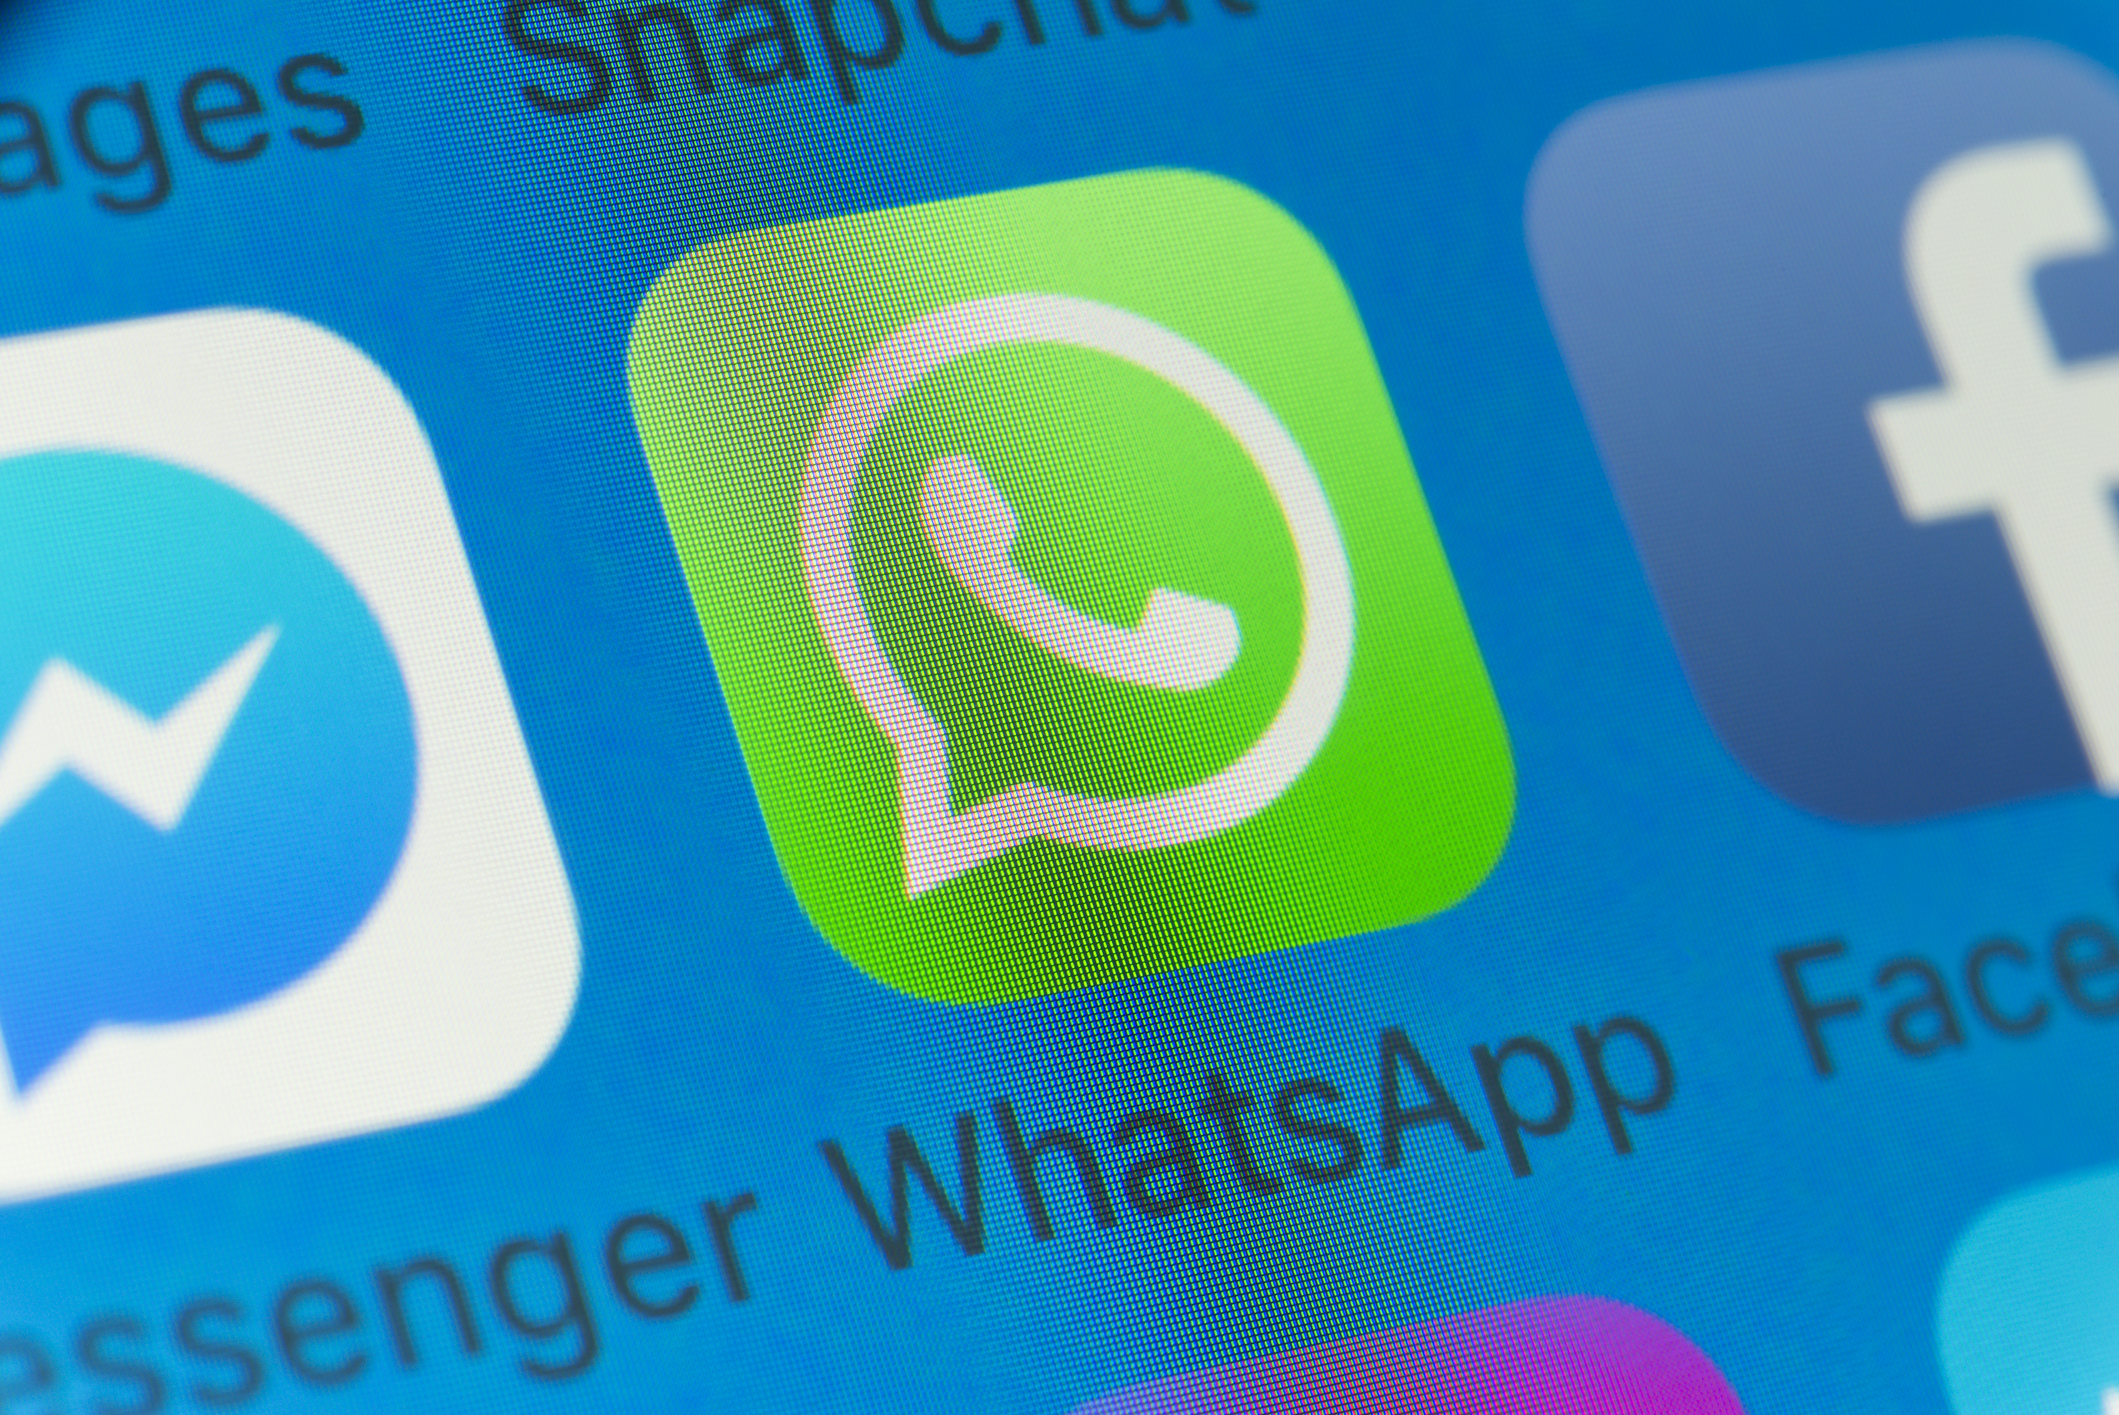 The social media giant which owns WhatsApp has named Zonel Sougaijam, 22, on a list where it has thanked those who make